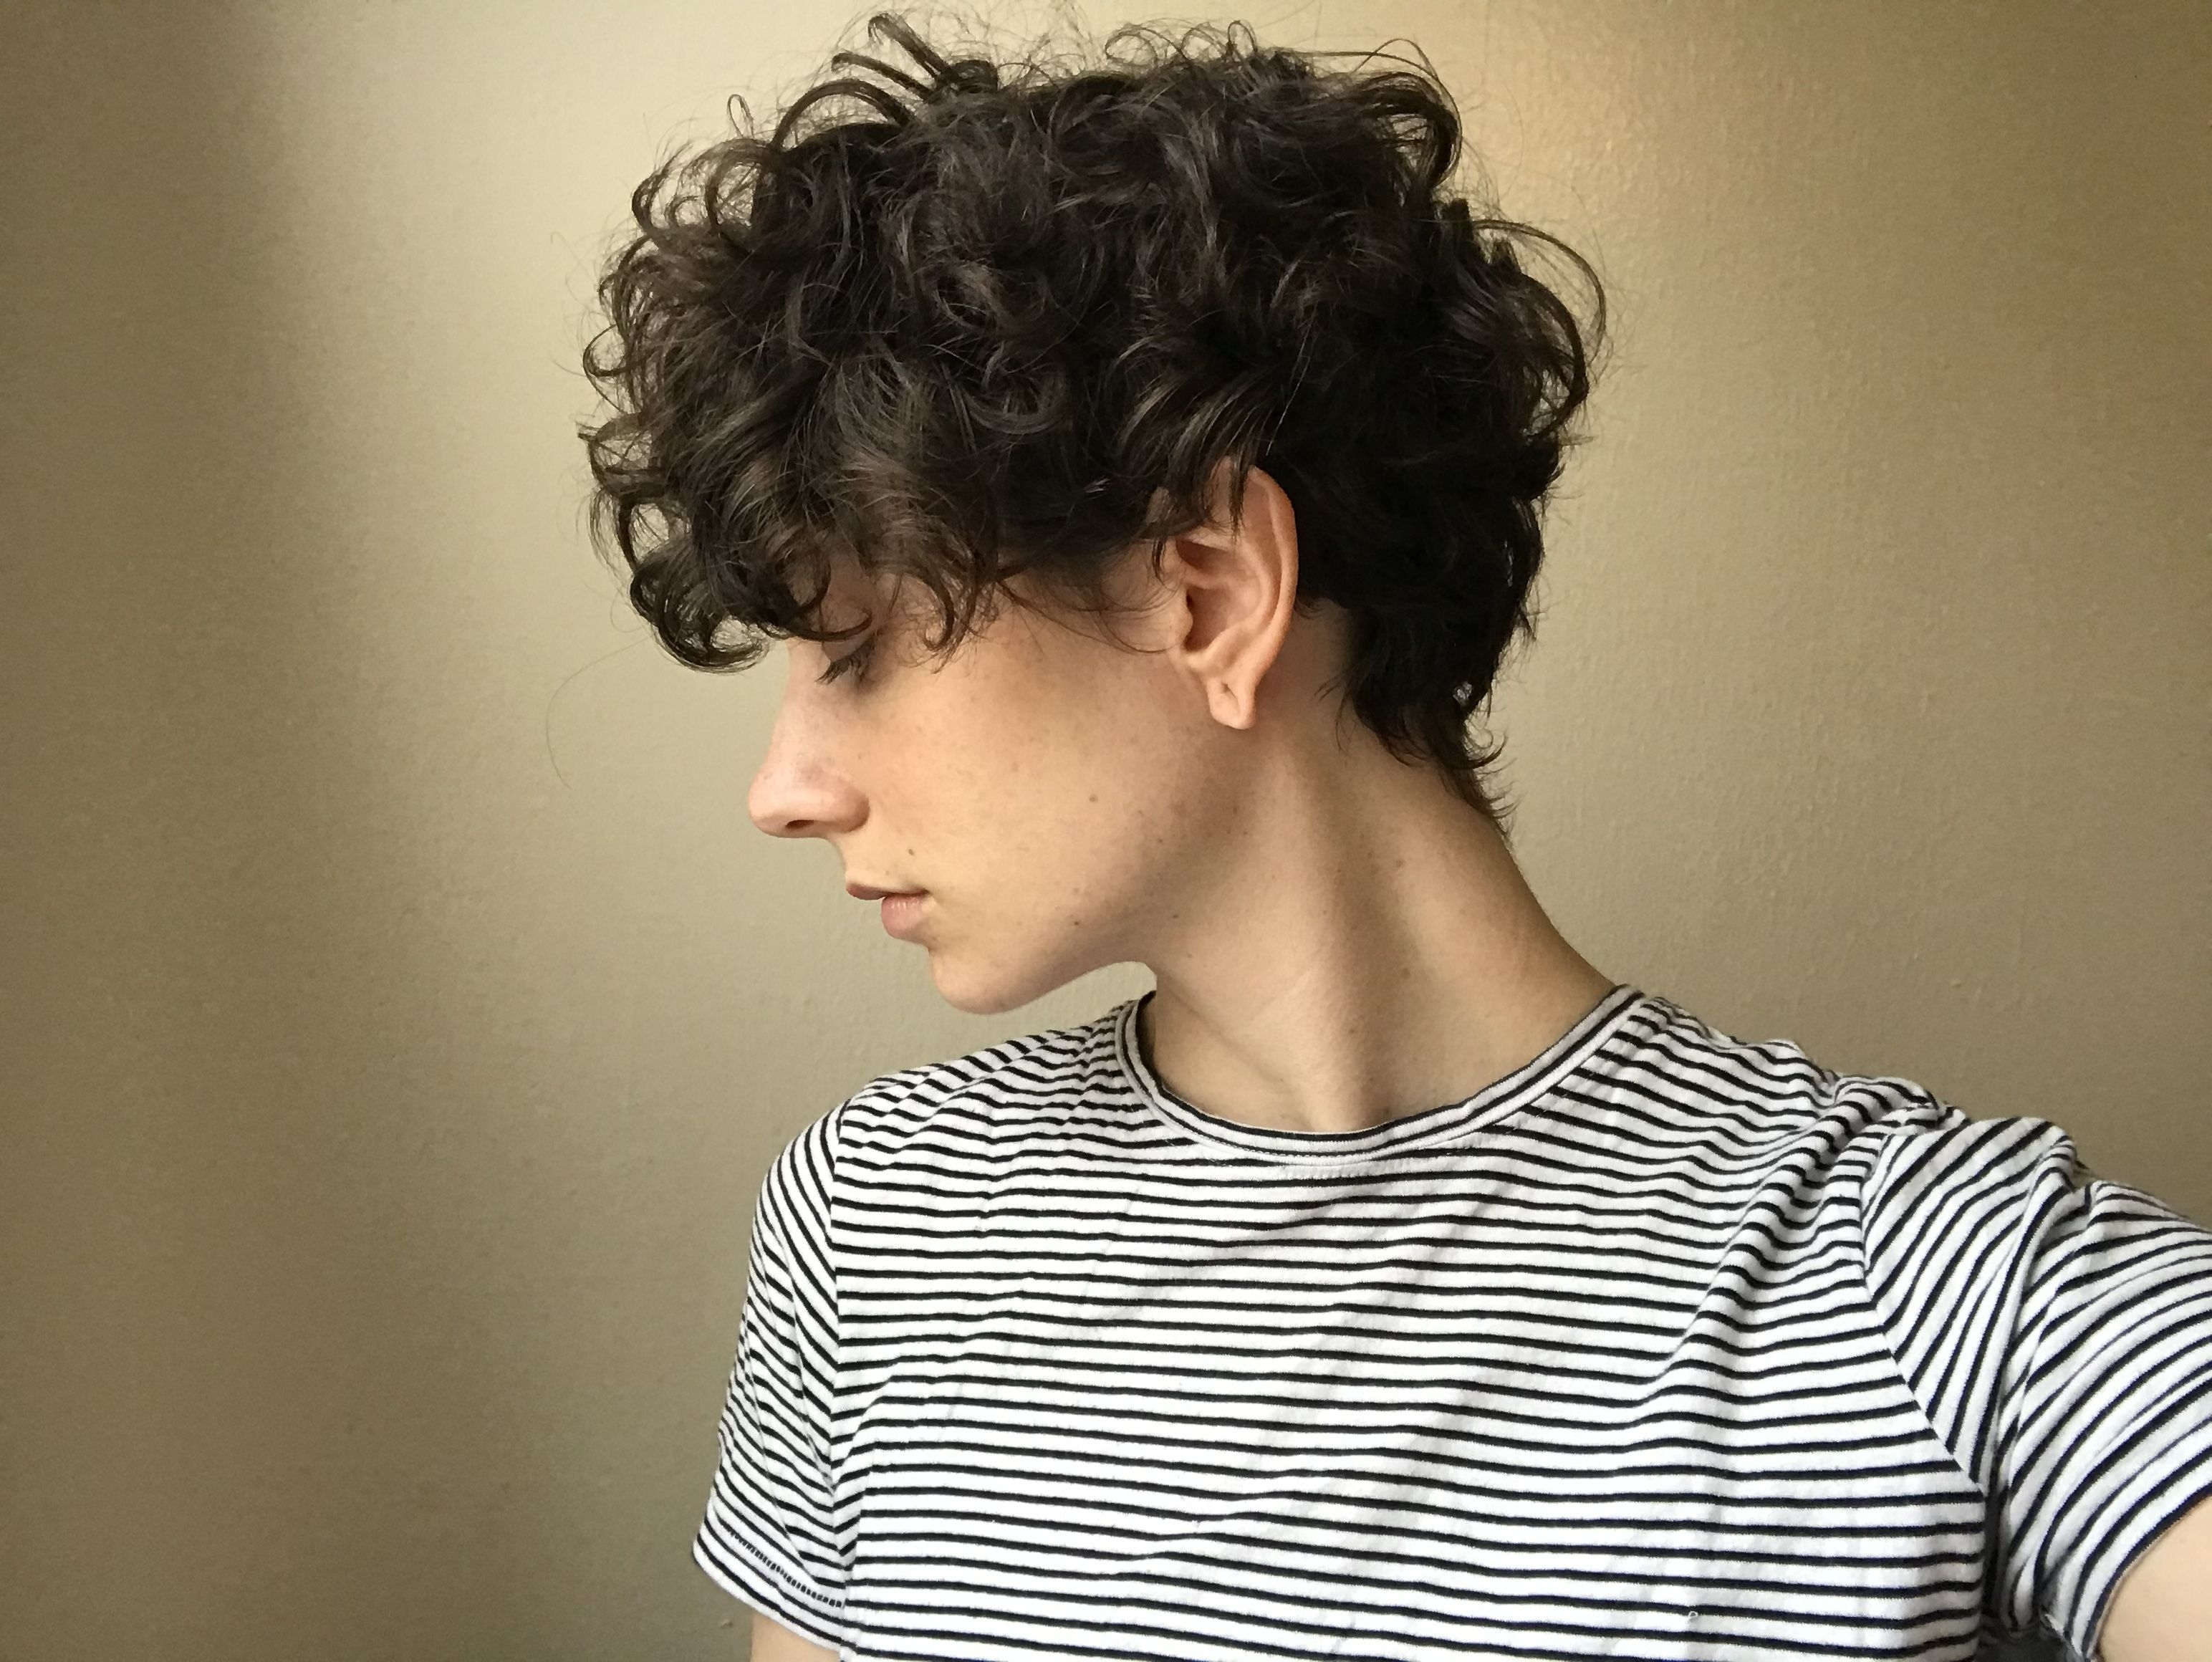 Image Gallery Of Growing Out Pixie Haircuts For Curly Hair View 4